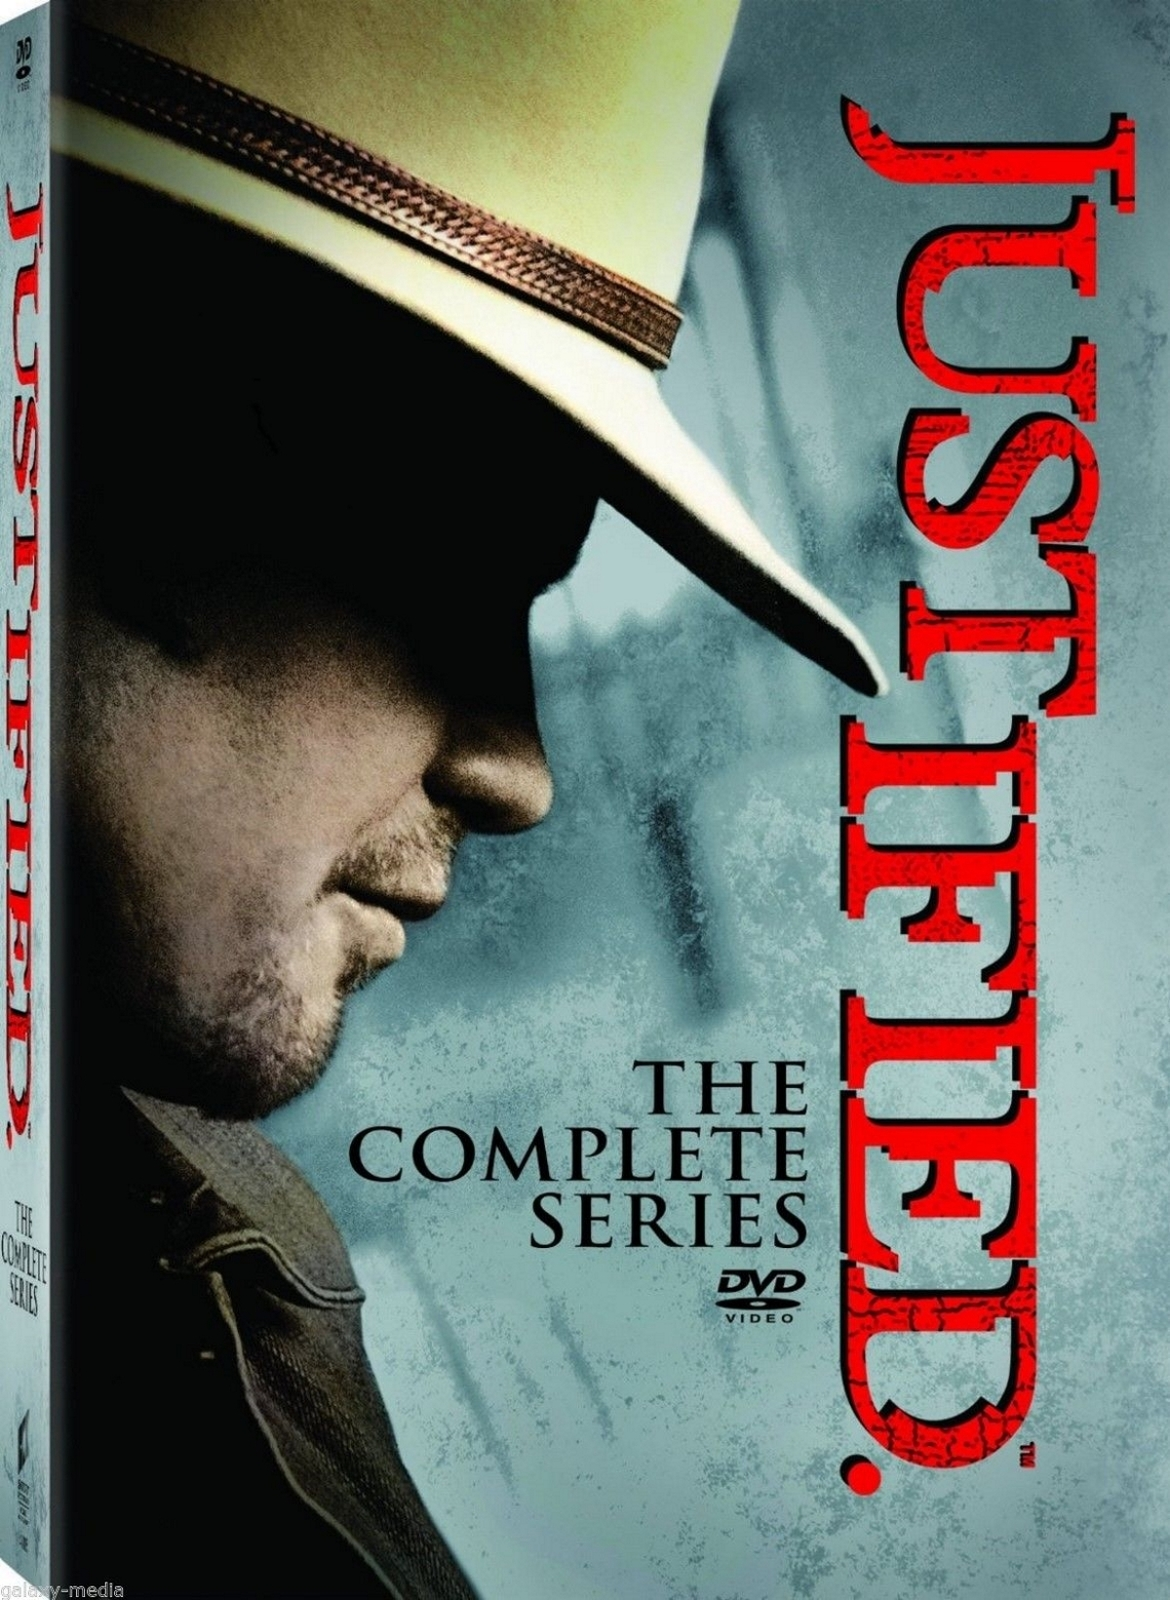 Justified complete series dvd